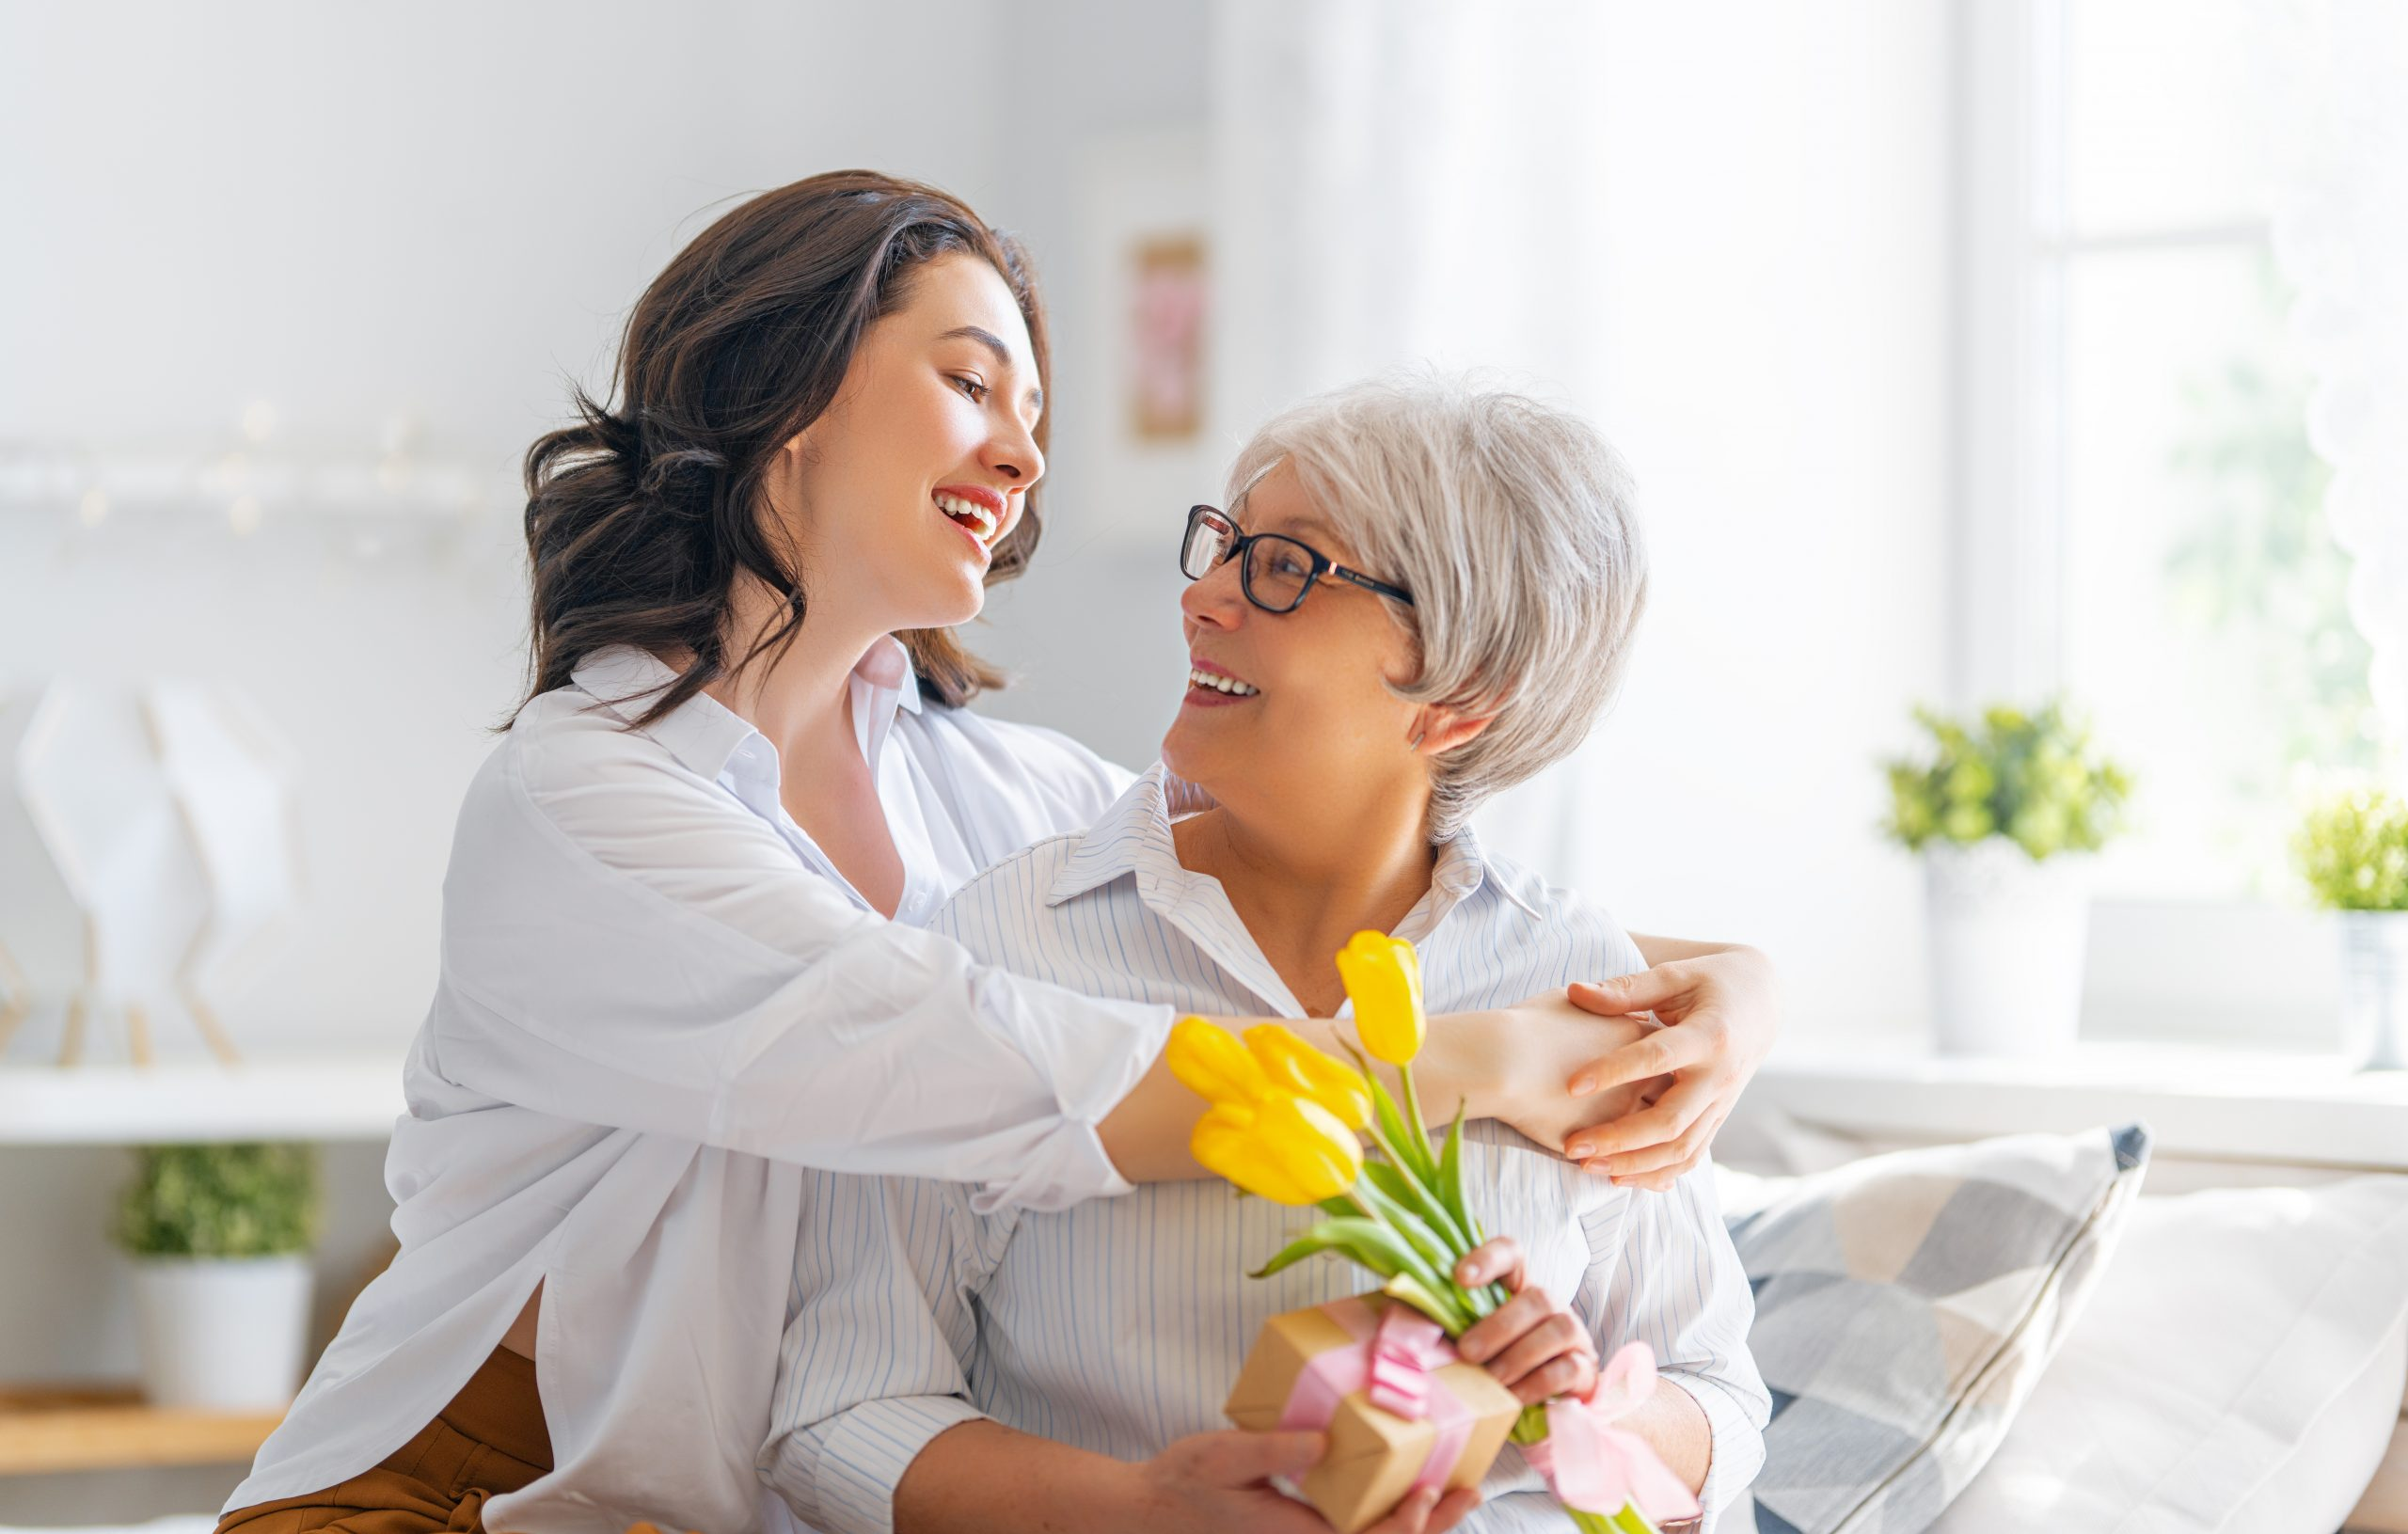 virtual mothers dya, plan mothers day on your phone. q link wireless is giving a free $100 visa gift card in a mother's day giveaway